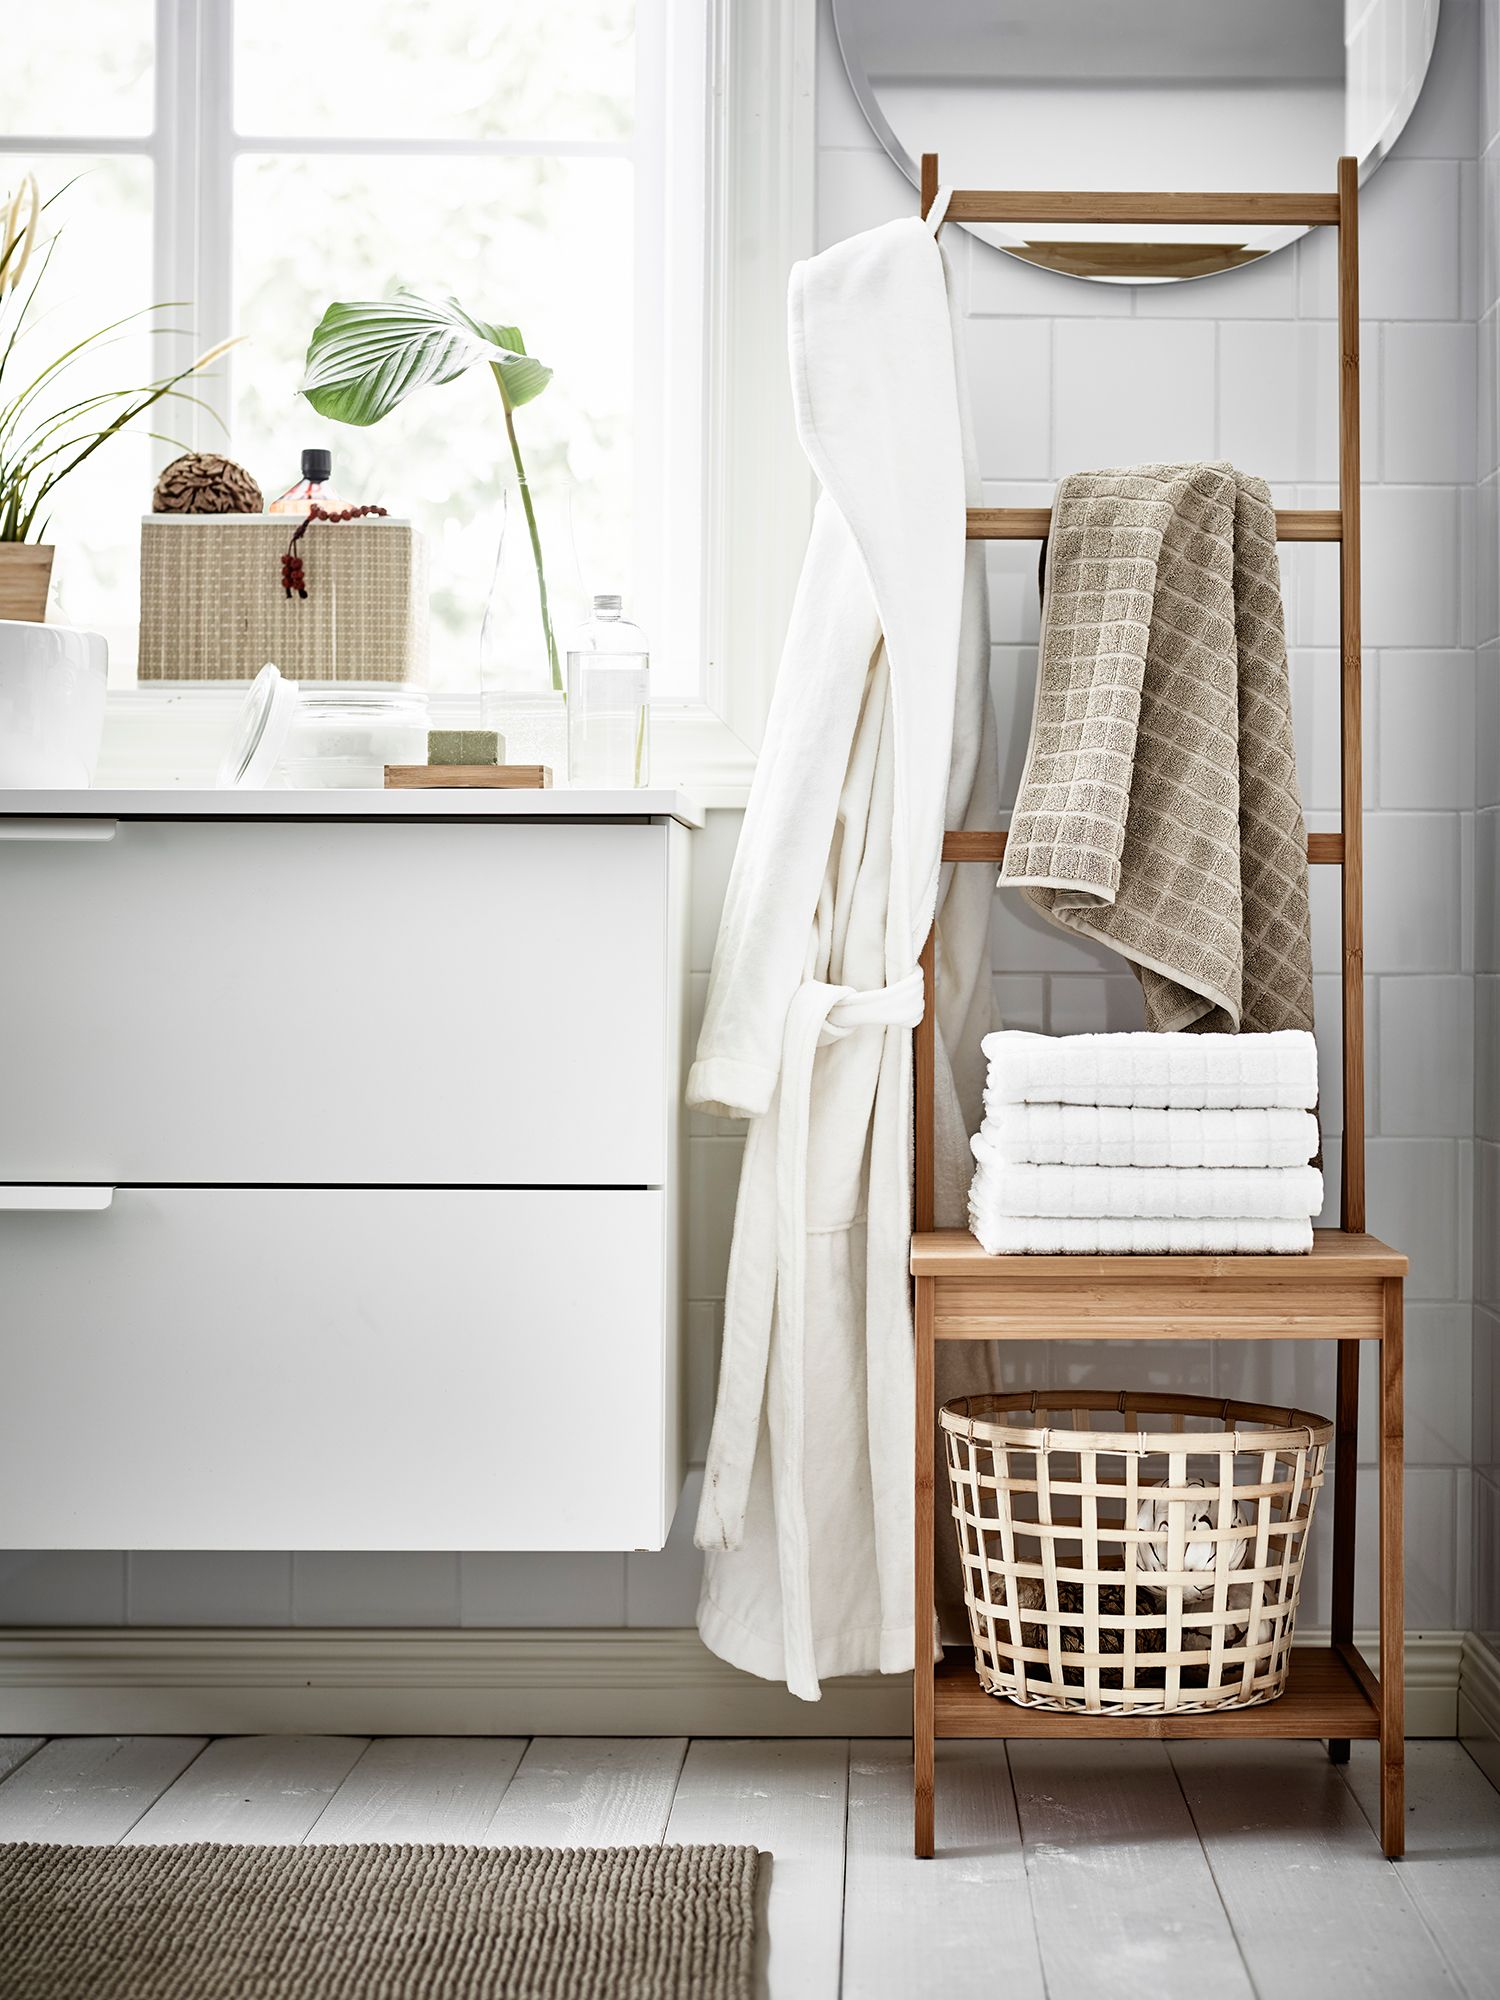 Bathroom shelving ideas to solve all your storage woes | Home ...